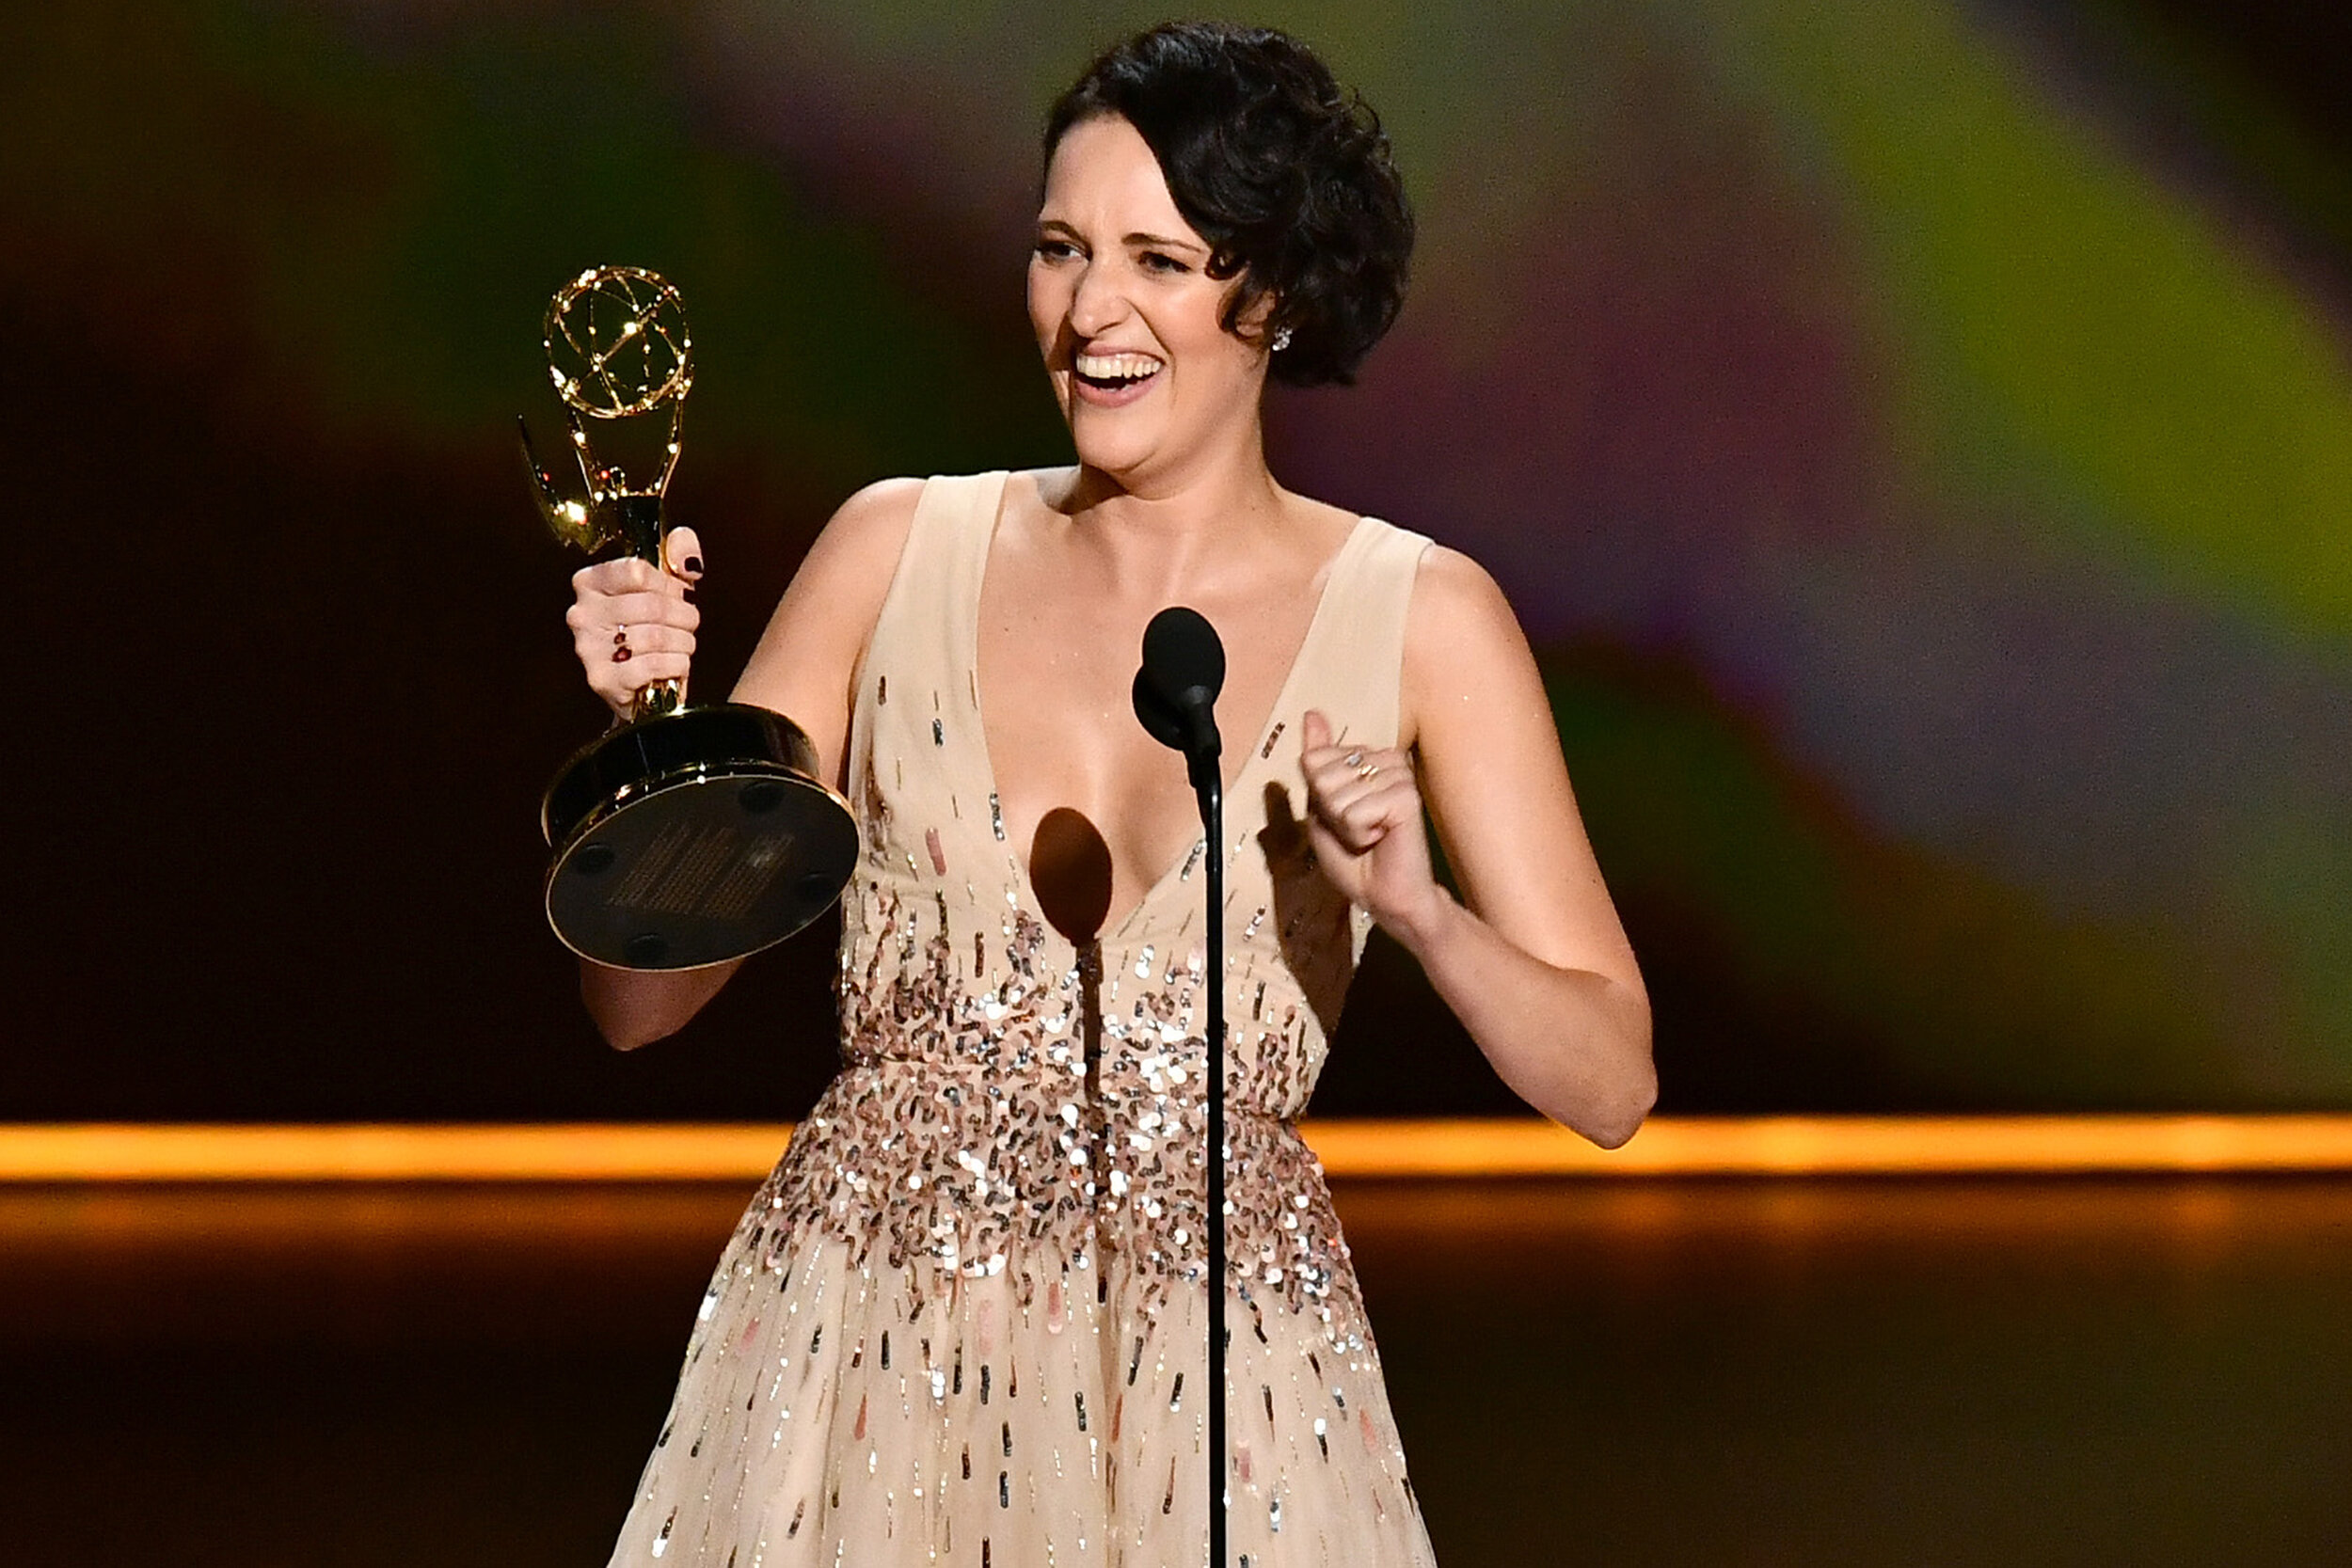 Fleabag  nearly swept in Comedy, taking home wins in series, directing, writing and lead acting, as Waller-Bridge denied Julia Louis-Dreyfus what would have been a history making seventh win for  Veep . Thrilled to see a show this good get the awards it deserves